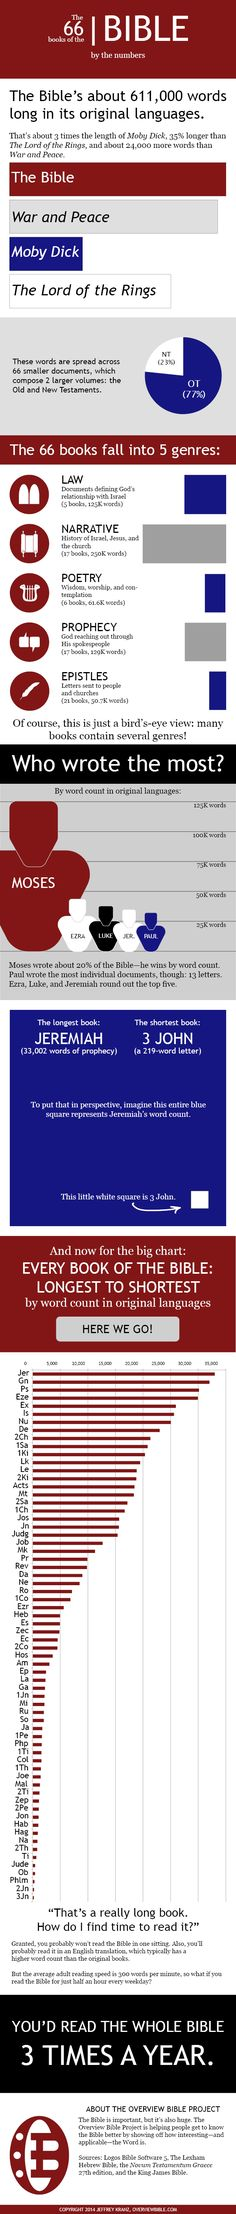 How Long is the Bible? #Infographic via ChurchMag